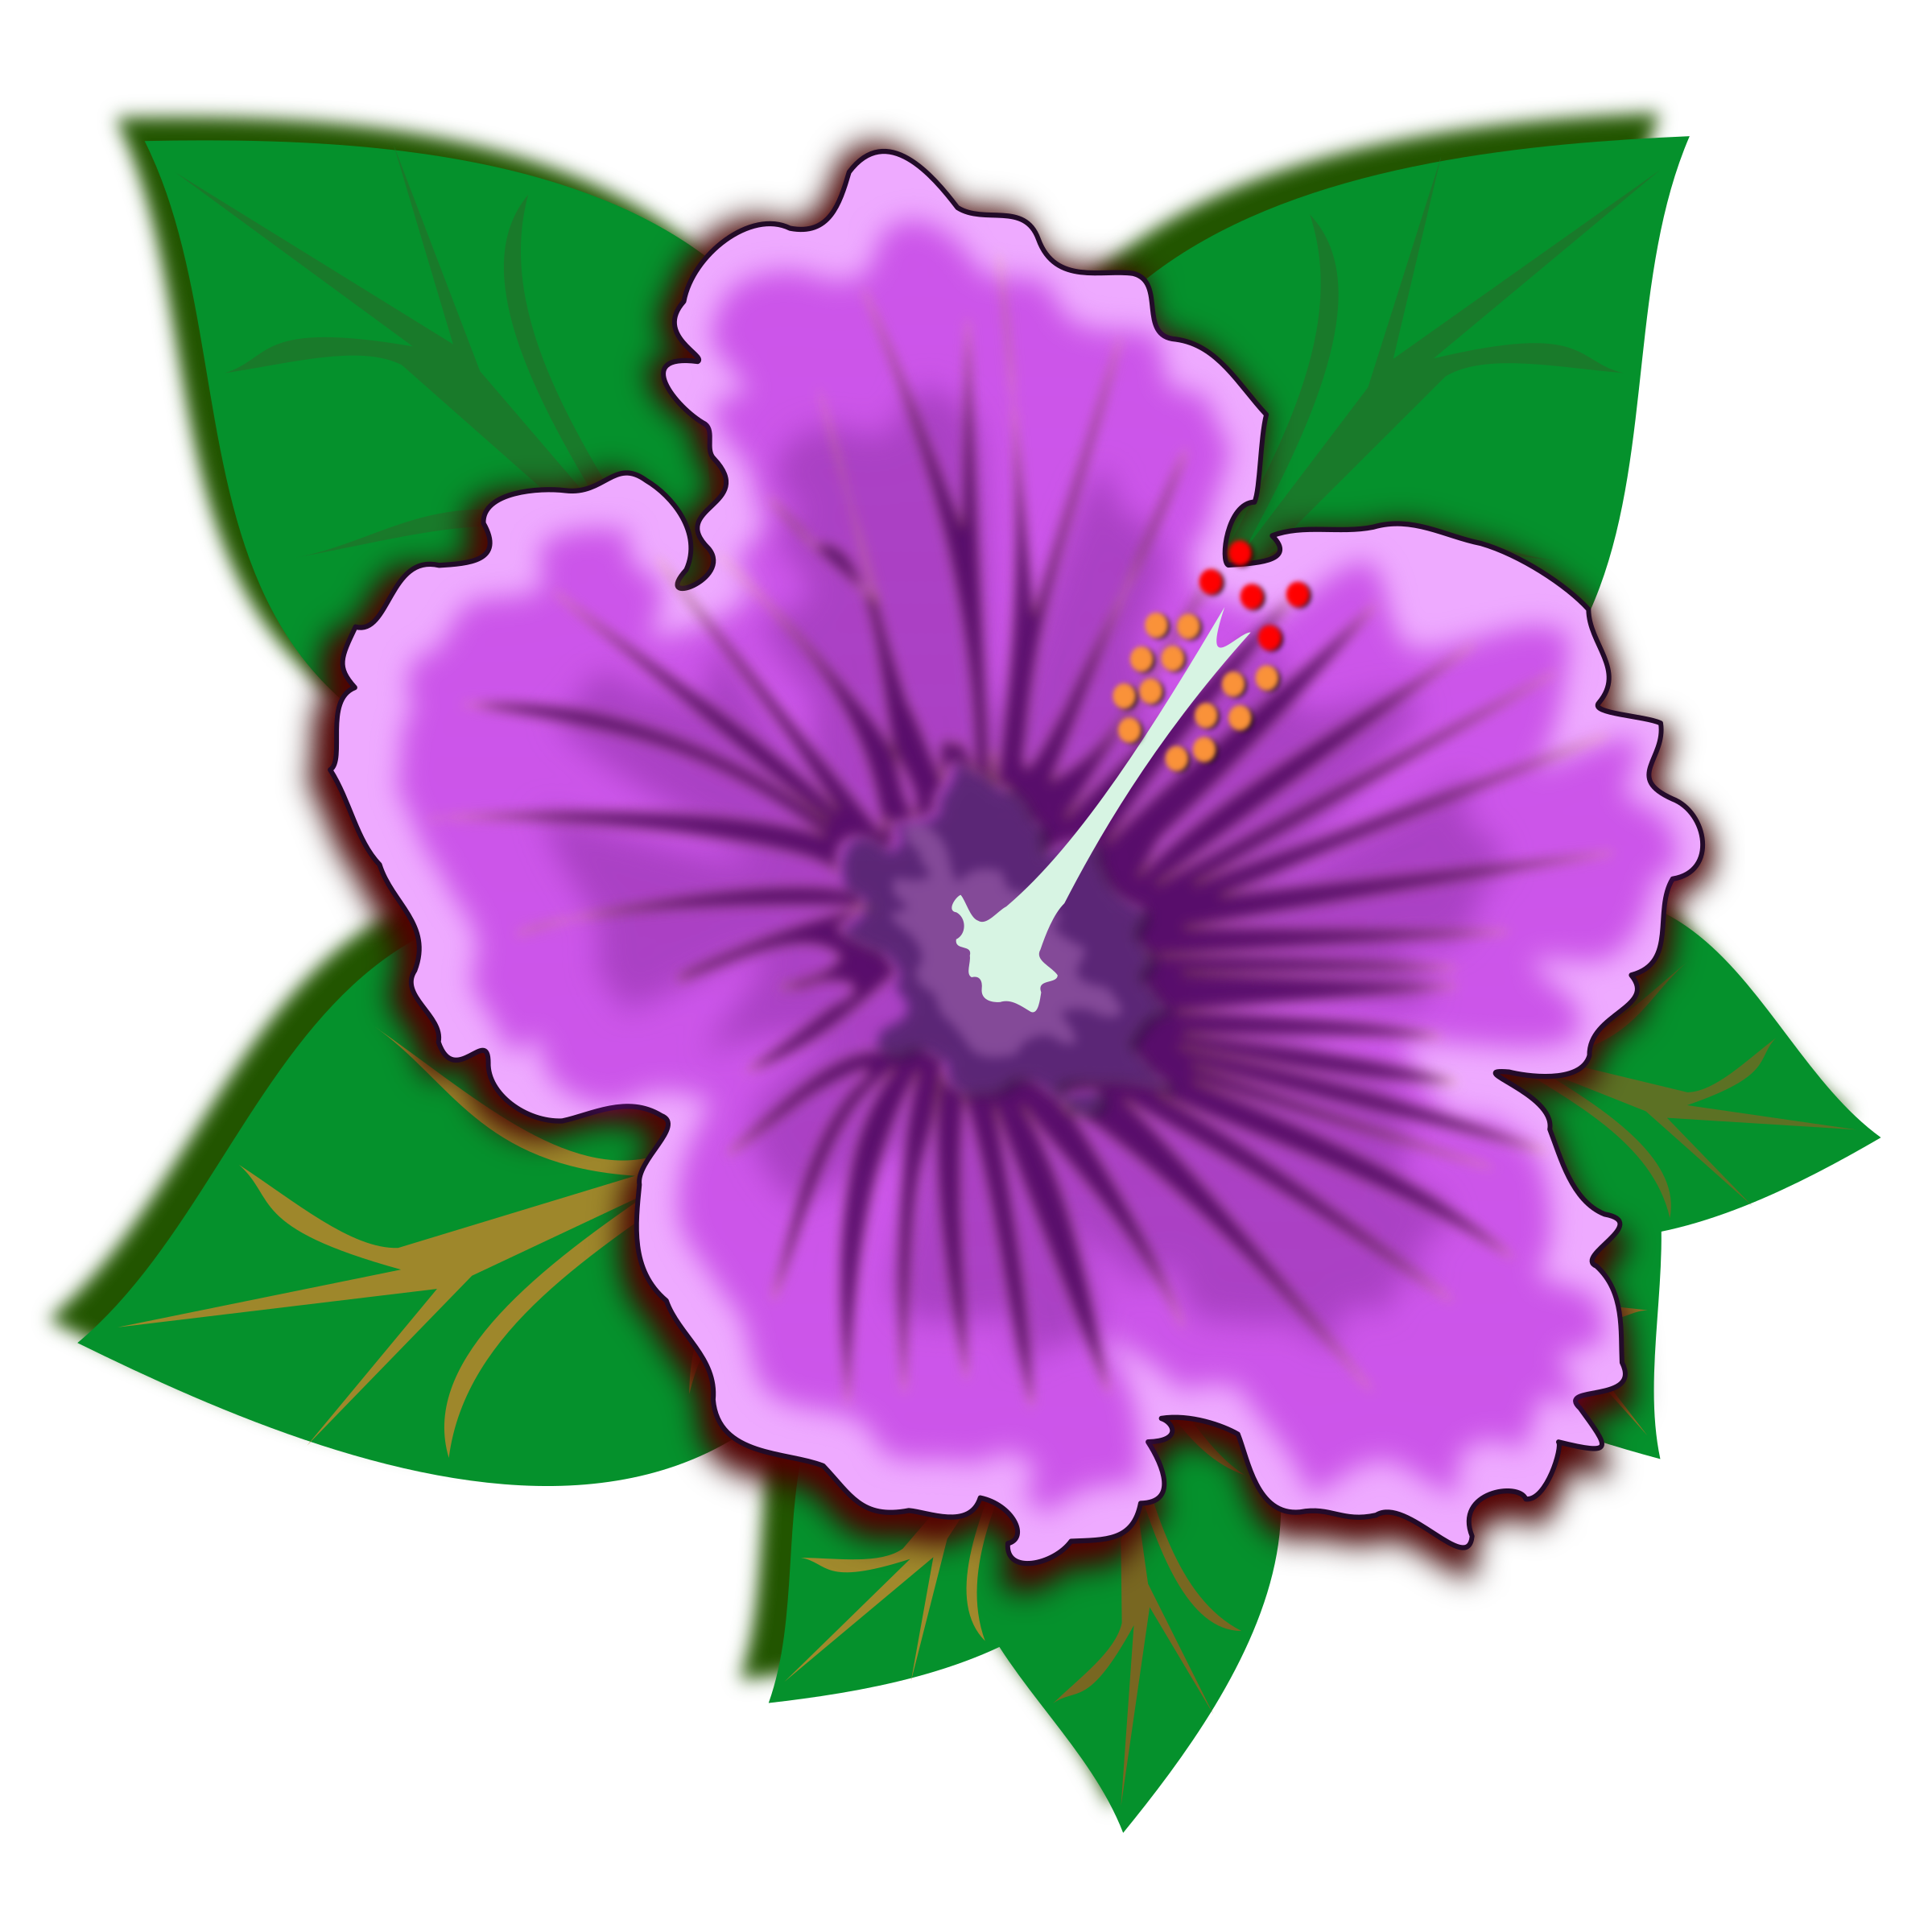 Jungle flower png. Plants clipart at getdrawings